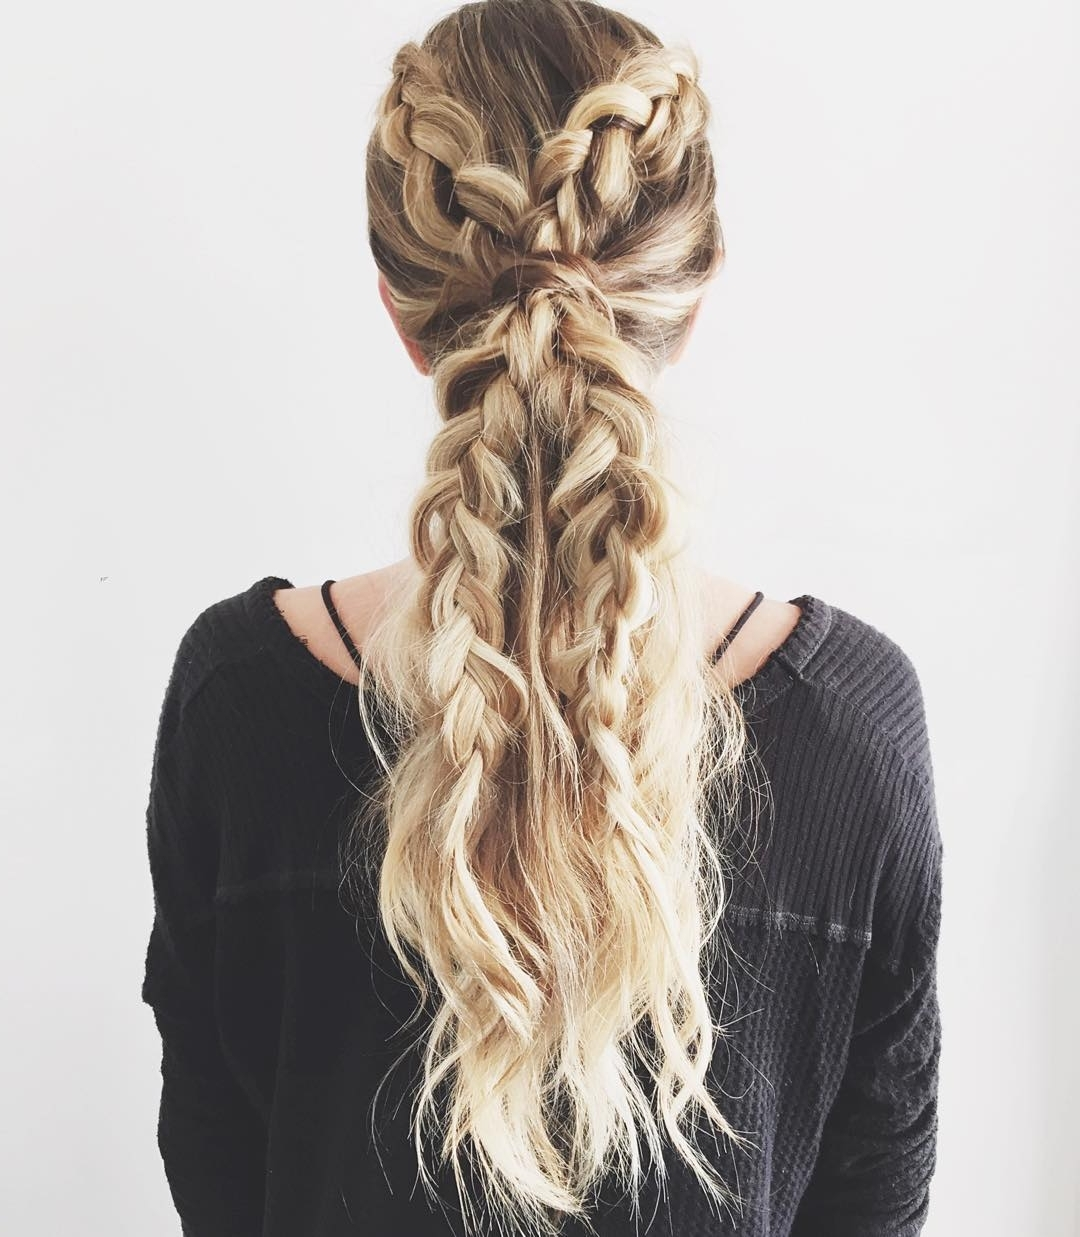 Popular Side Pony Hairstyles With Fishbraids And Long Bangs Regarding 30 Braided Ponytail Hairstyles To Slay In (View 11 of 20)